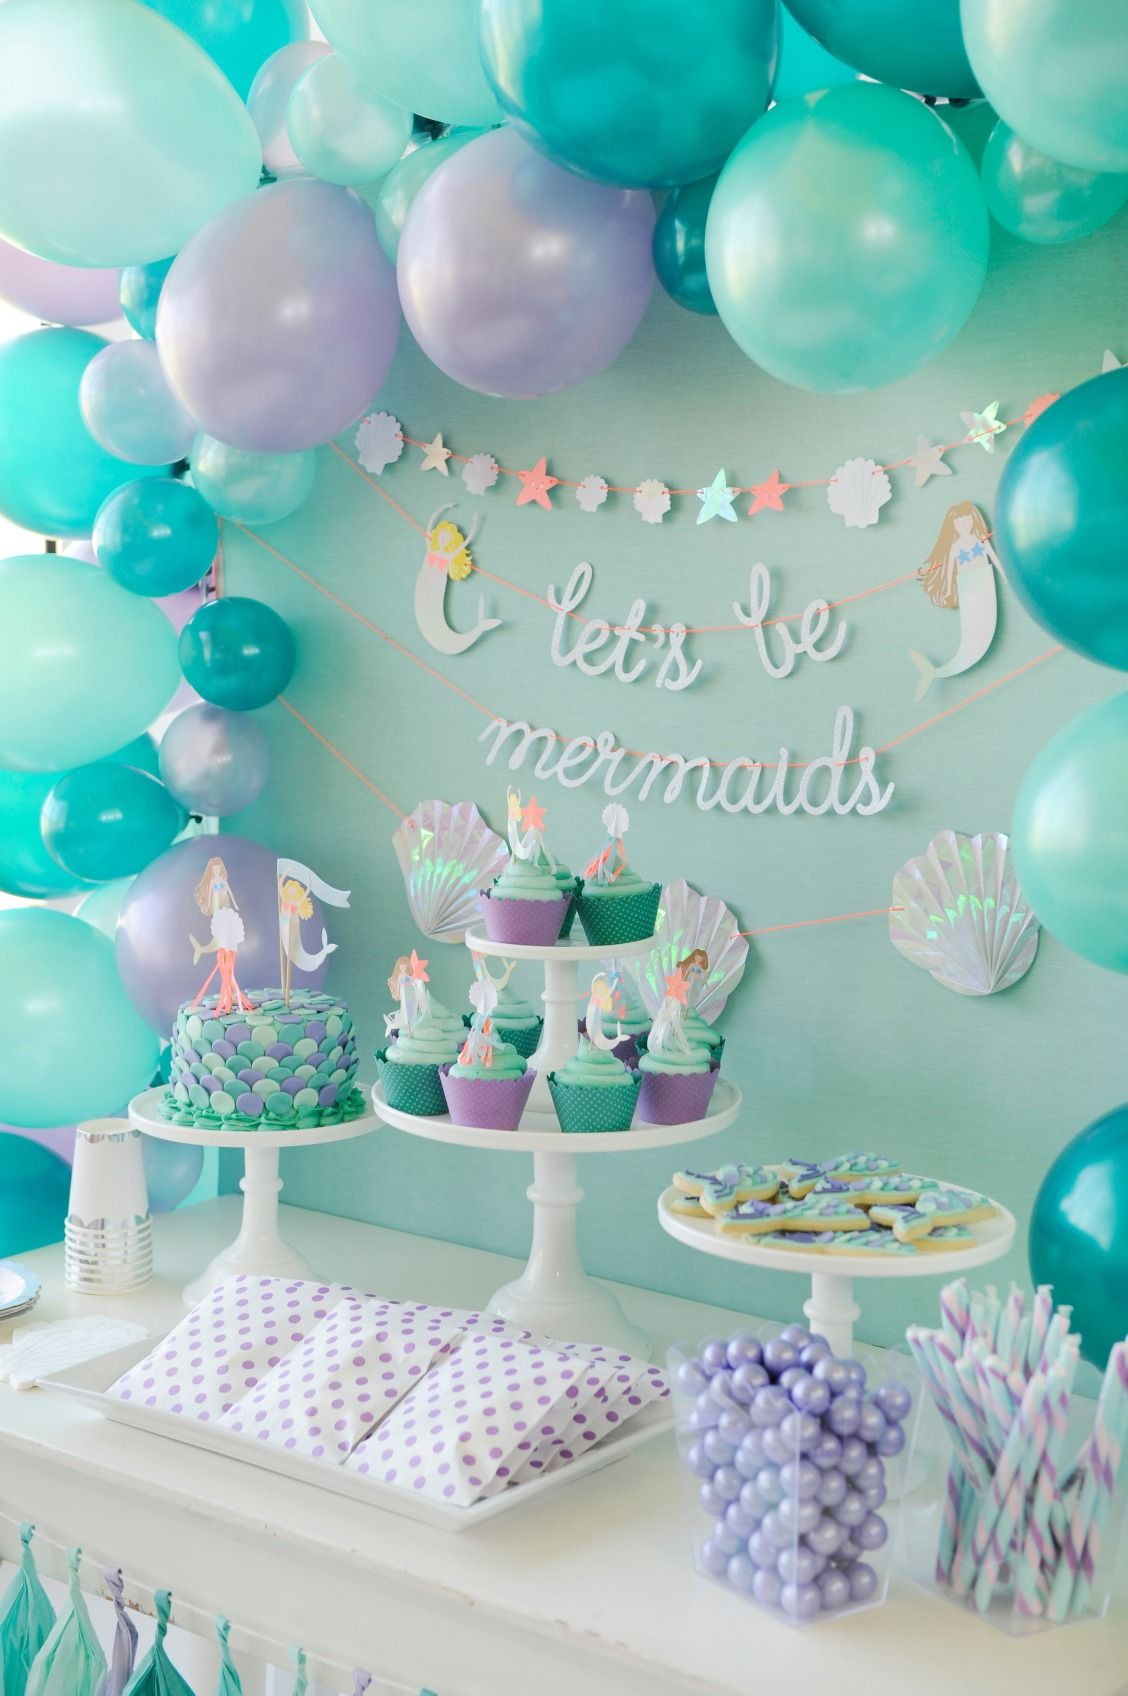 Best ideas about Mermaid Birthday Party Decorations . Save or Pin Mermaid themed children s birthday party dessert table Now.